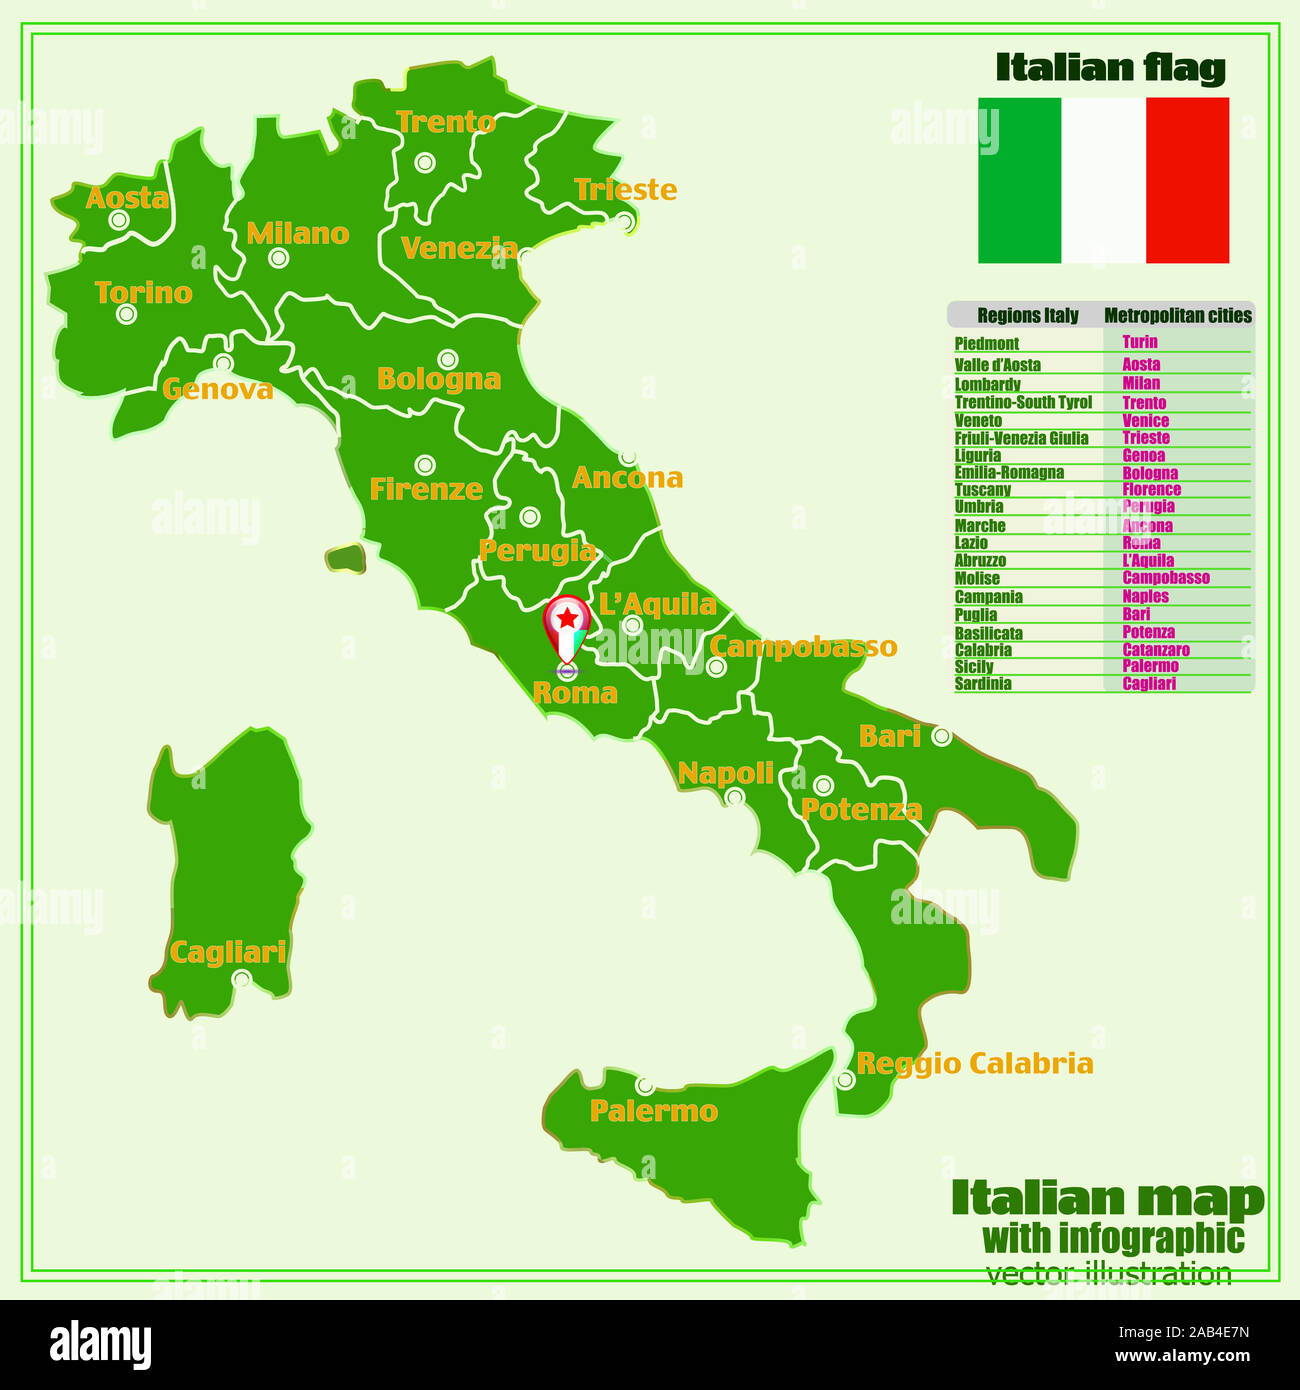 Regions Of Italy Map With Cities.Map Of Italy With Infographic Italy Map With Italian Major